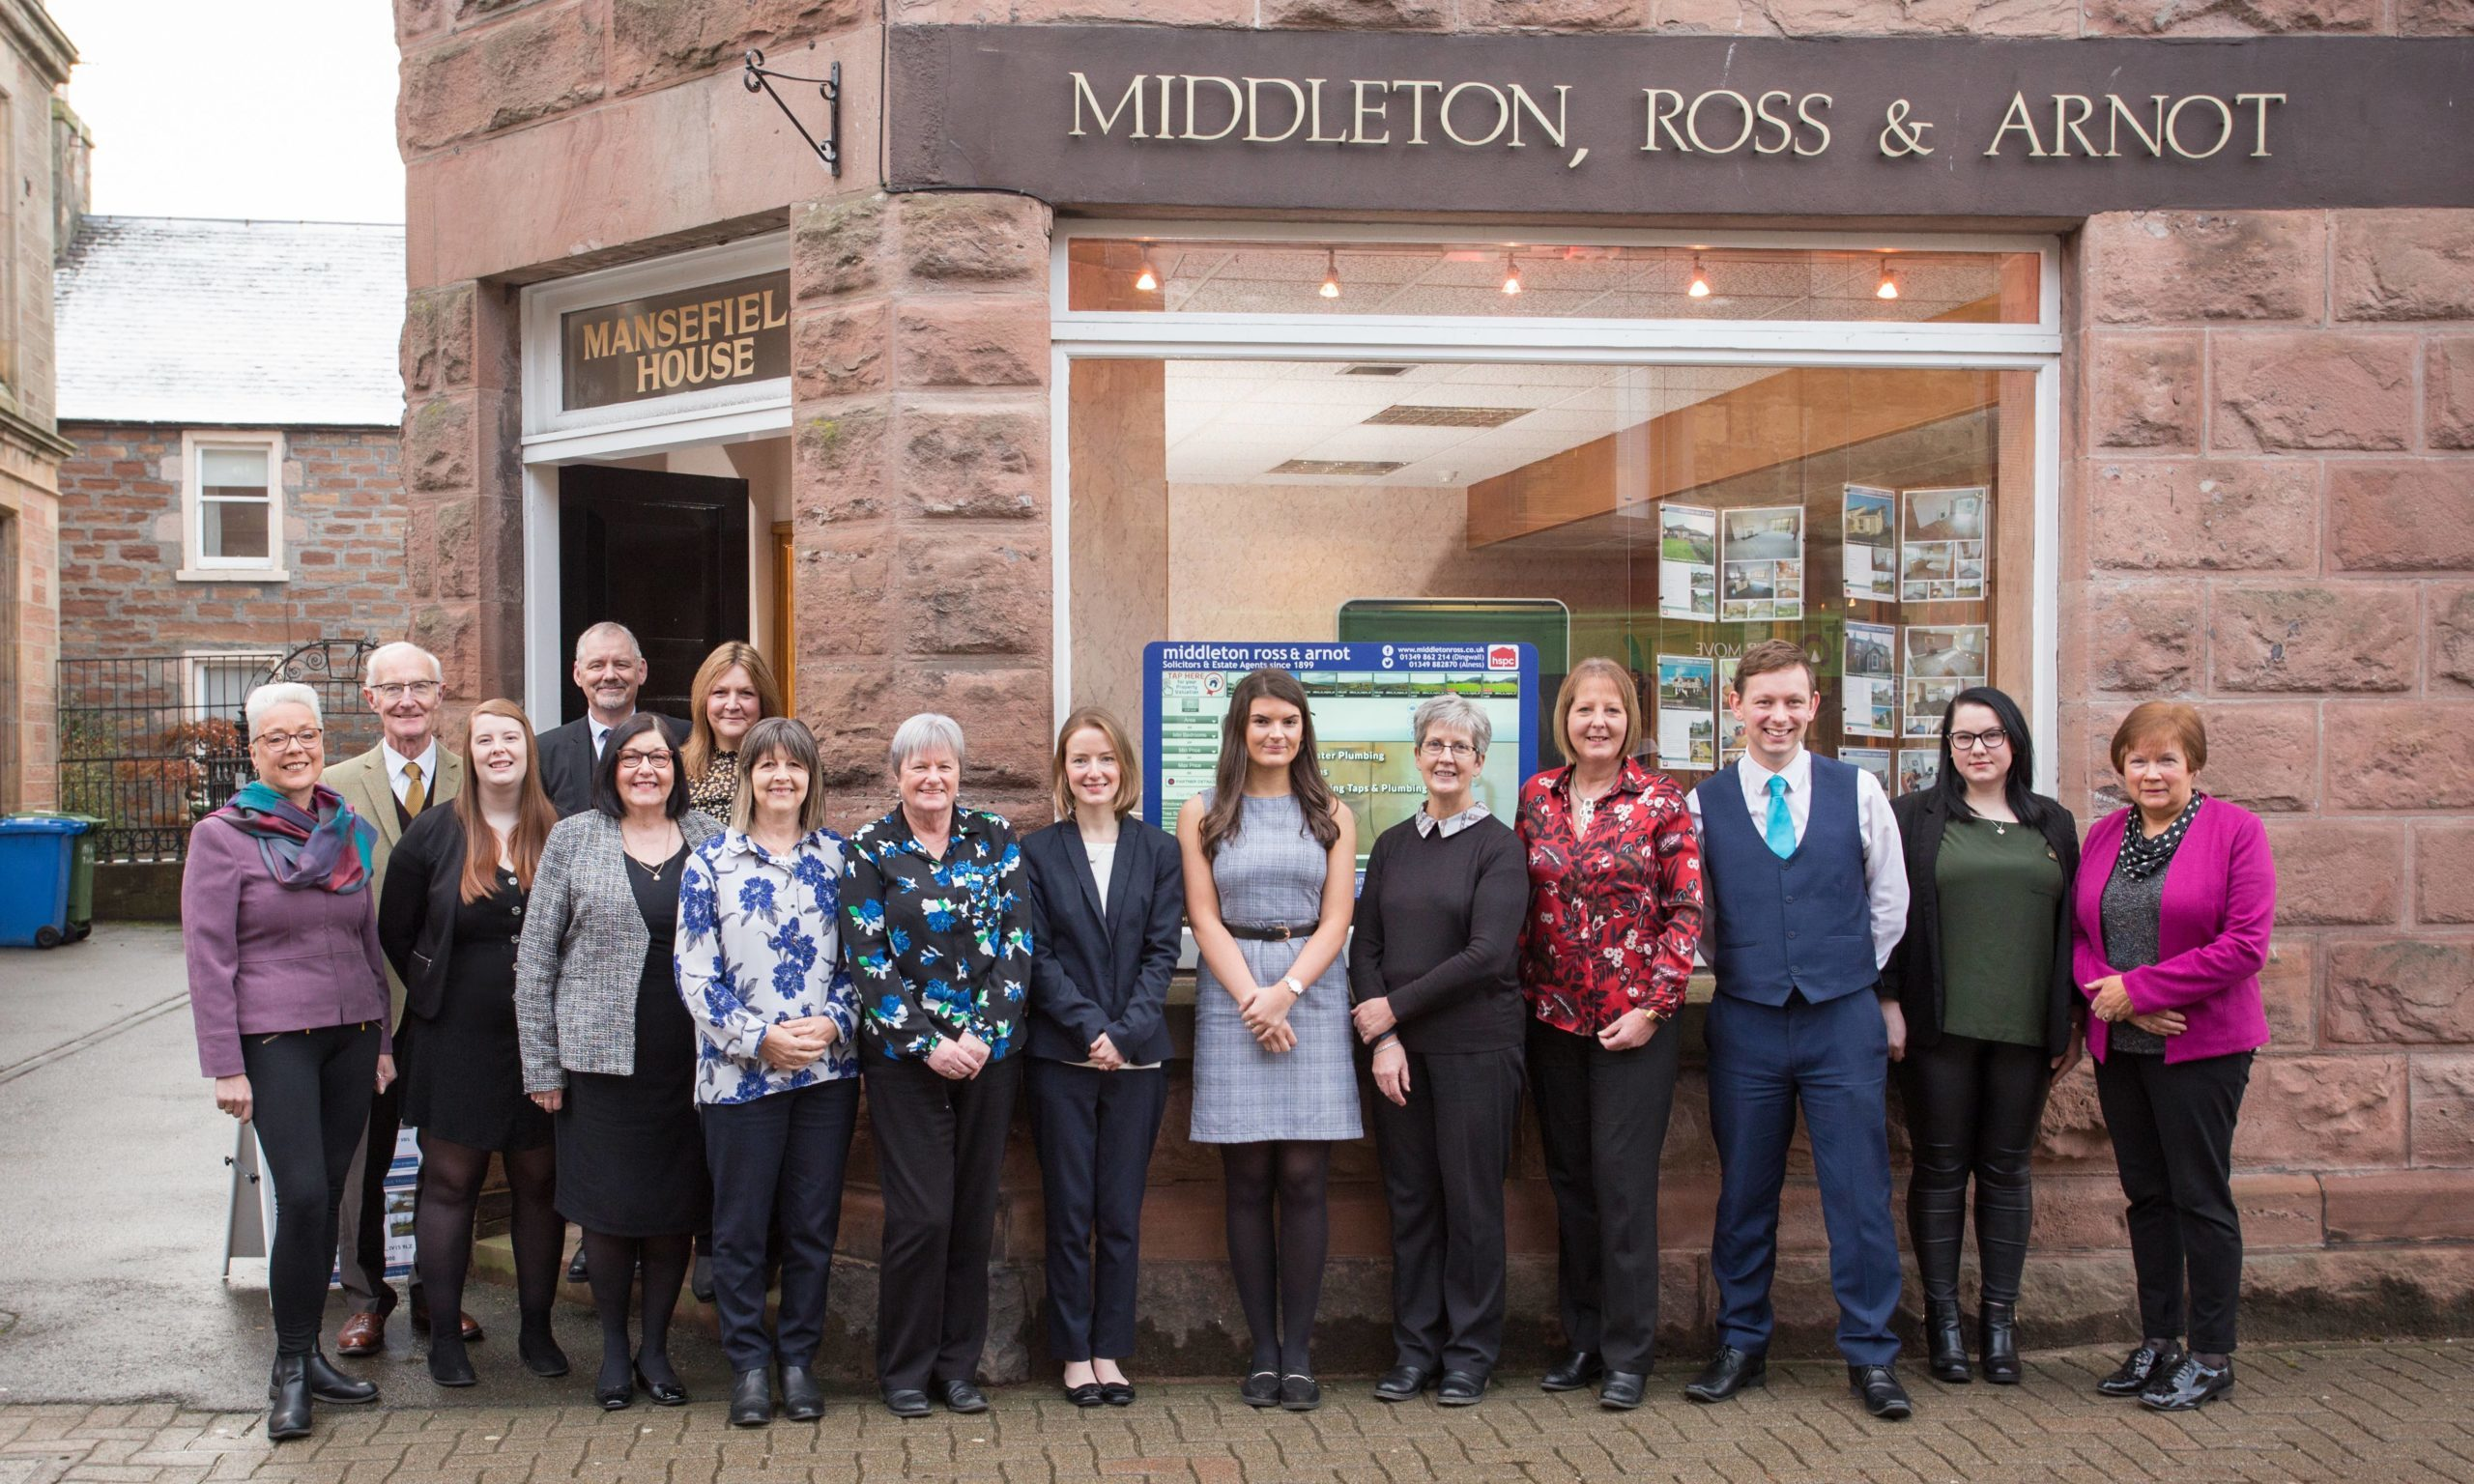 Middleton Ross, which has offices in Dingwall and Alness, is calling on local youth sports teams, charities and community organisations to apply to its new funding scheme